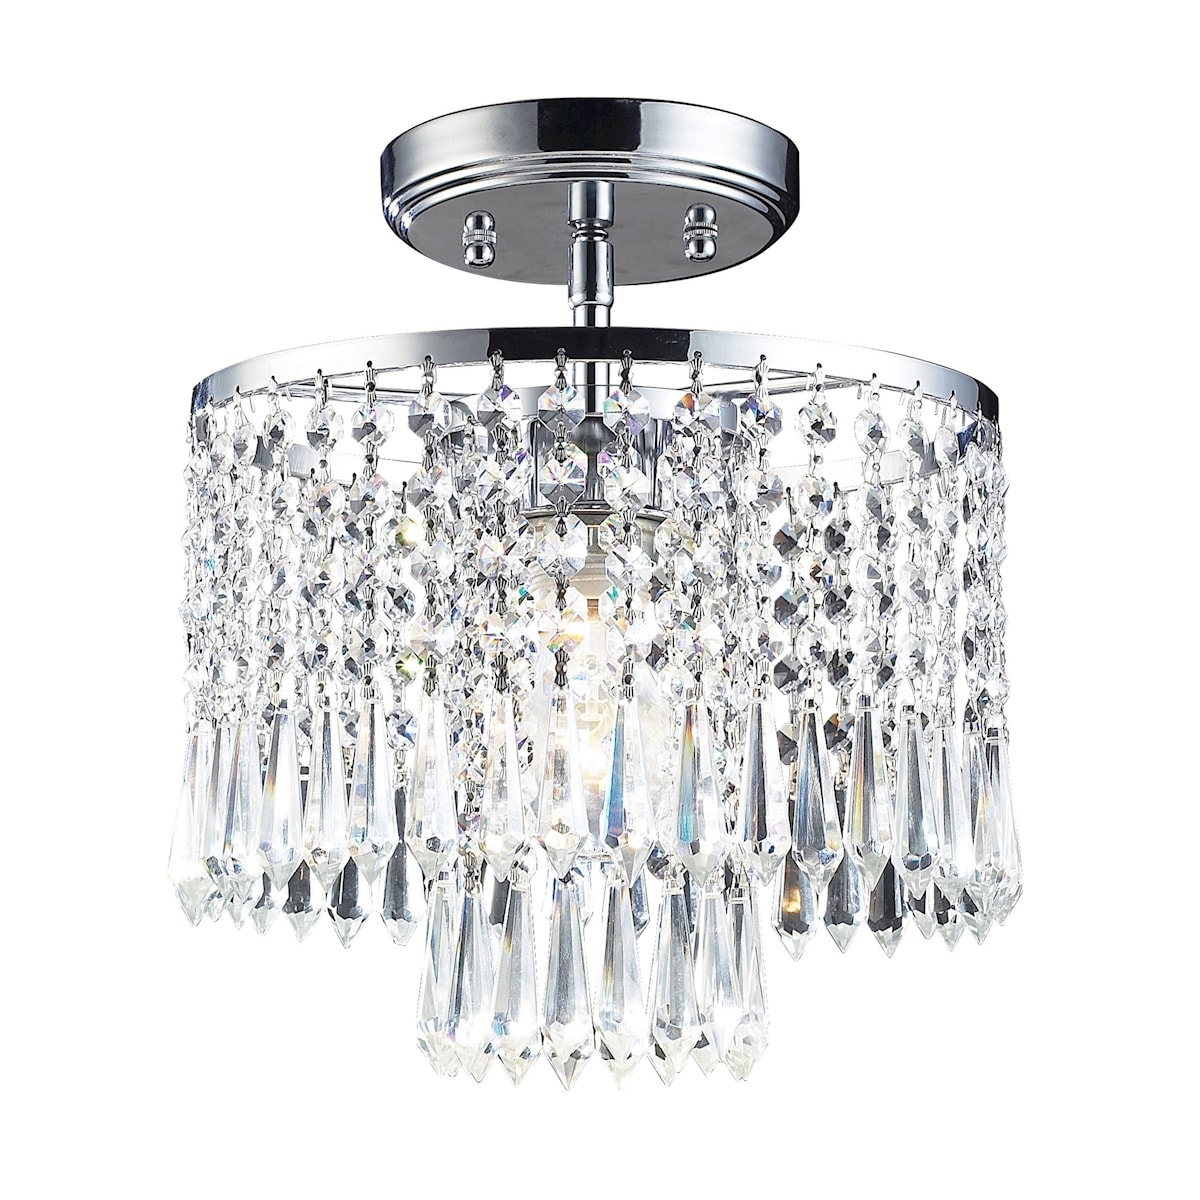 EL-1991/1_Optix Collection 1-Light Flush Mount with 32% Lead Crystal and Polished Chrome Fi